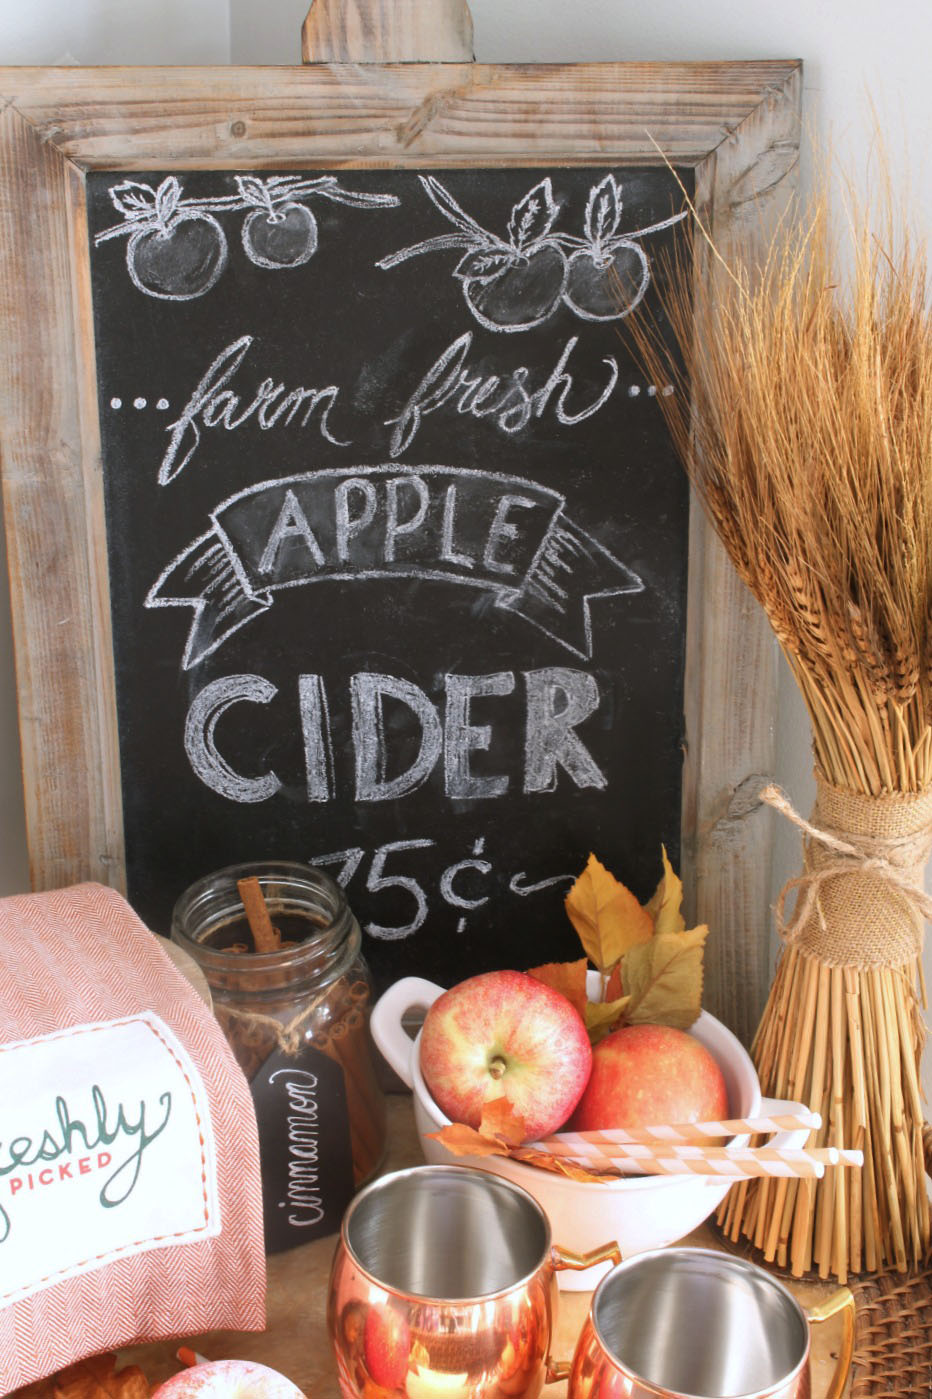 Apple cider bar chalkboard art displayed on a wood framed chalkboard.